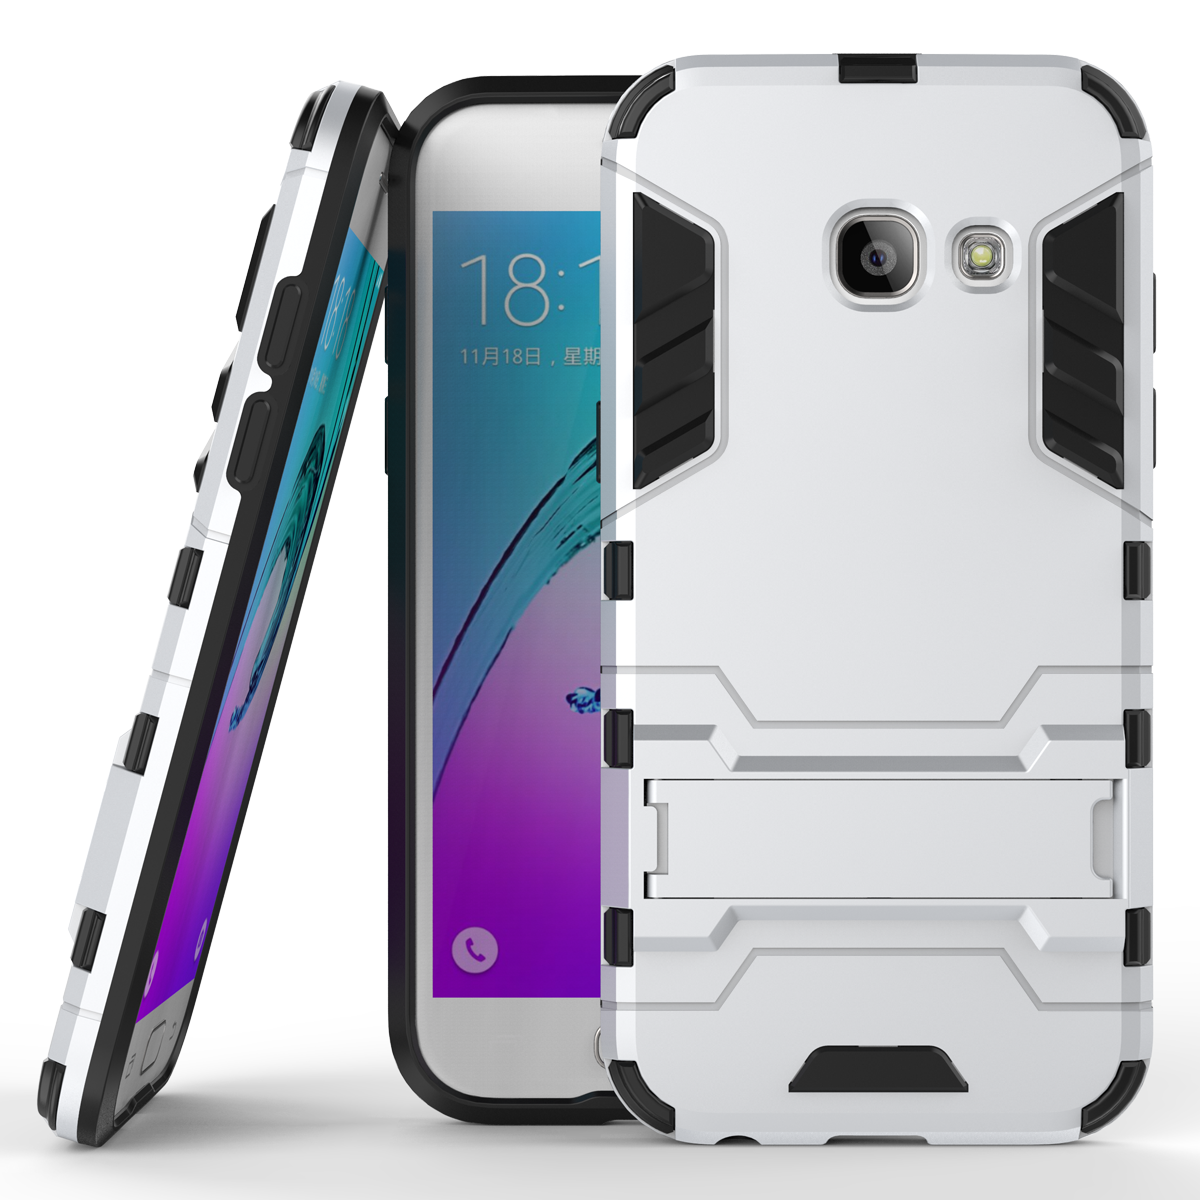 Armor kickstand protective phone cover case for samsung galaxy a3 2017 silver p20161229140357524